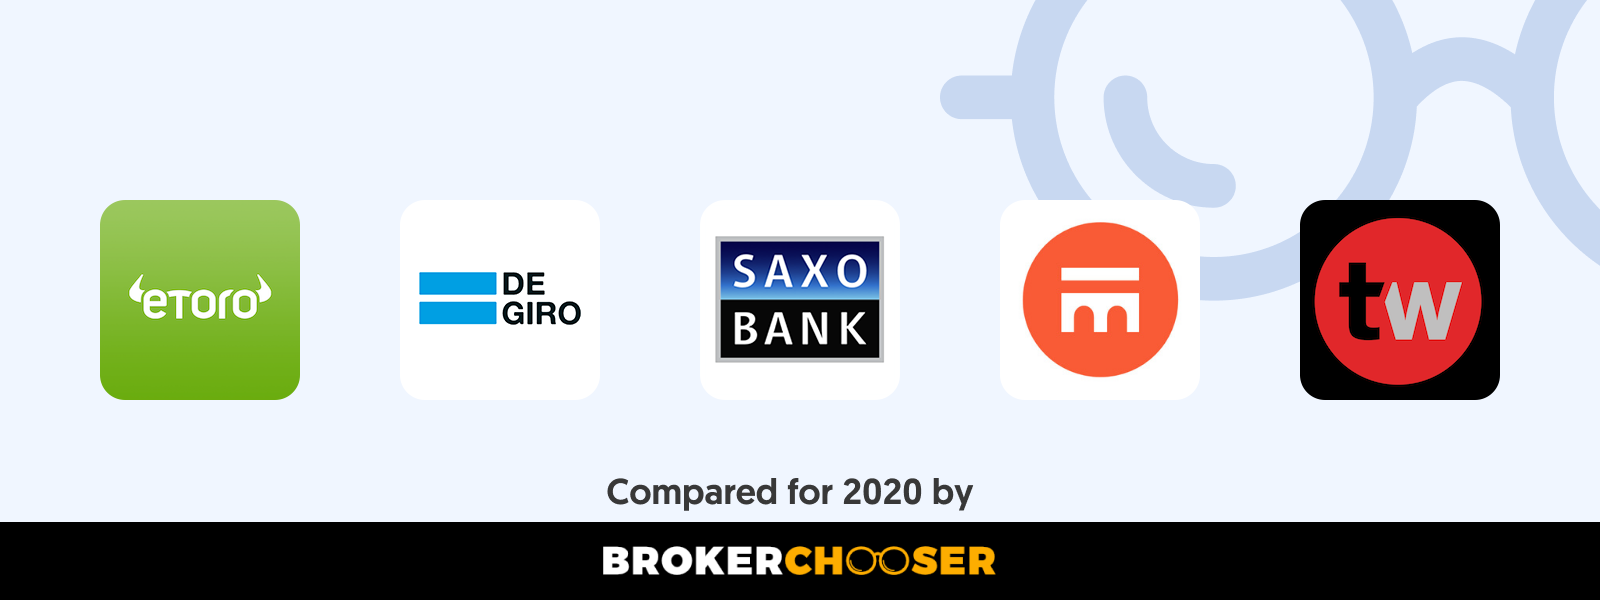 Best brokers for beginners in Spain in 2020